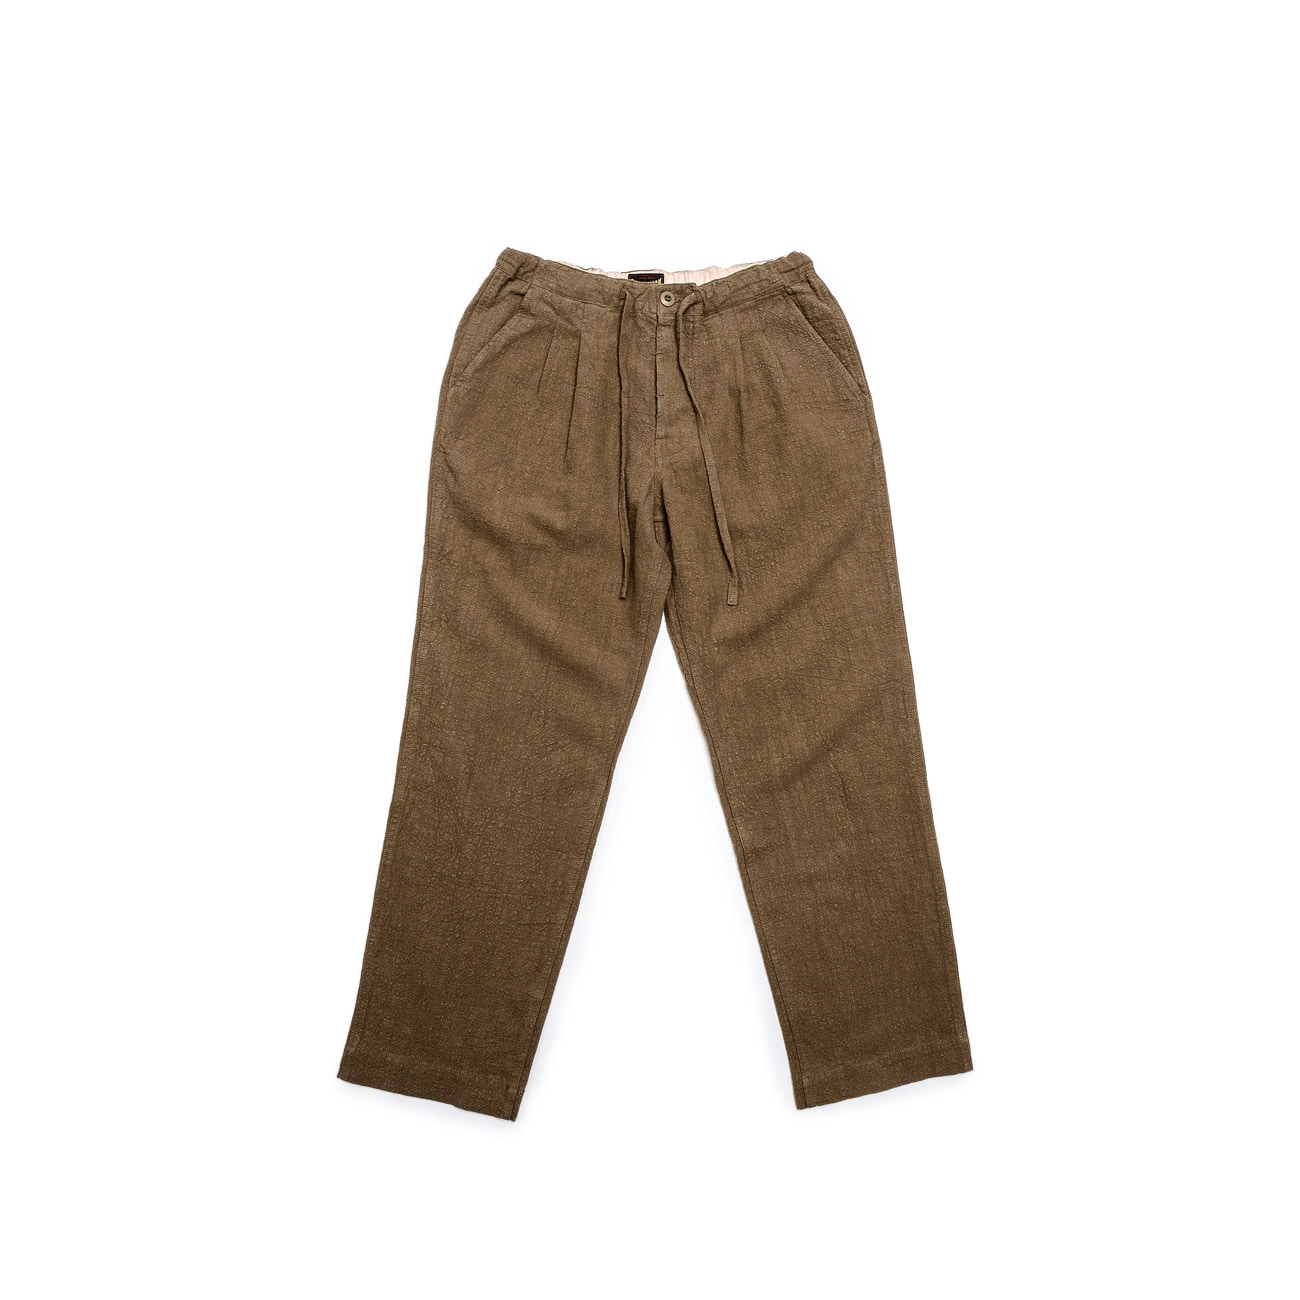 BU x East Oklm Linen Easy Pants